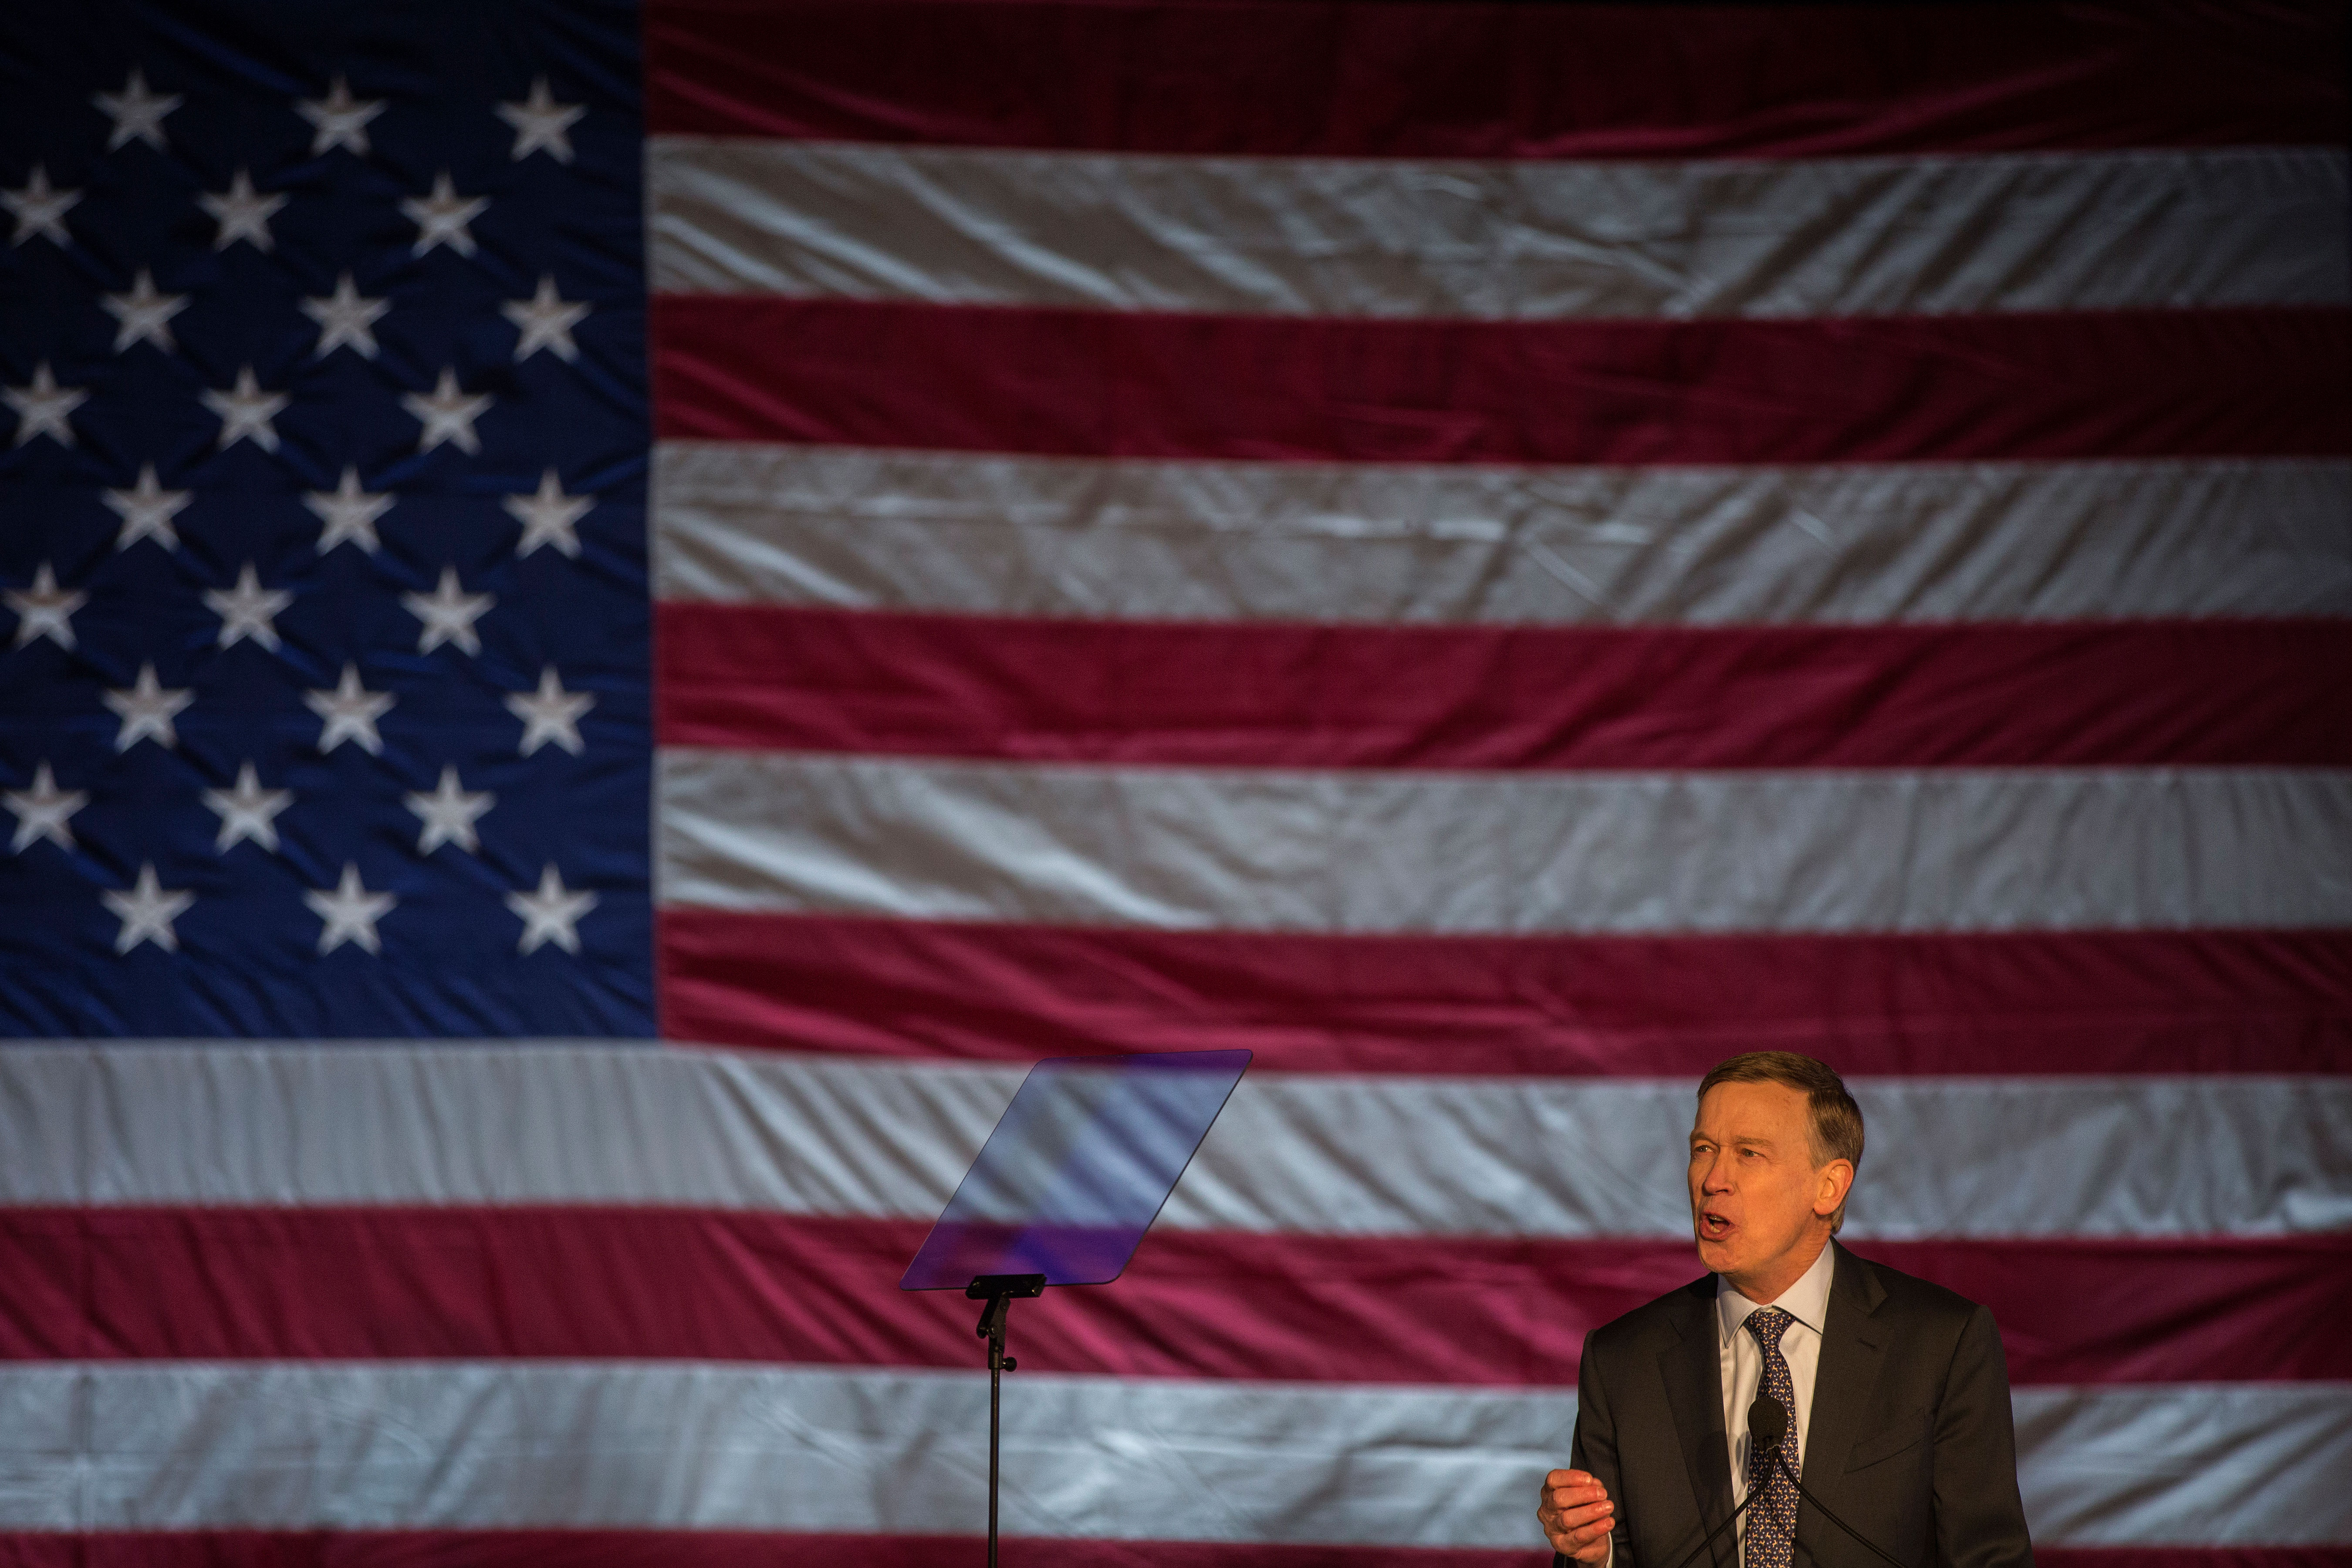 Photo: Hickenlooper Announces 3 HV 20190307